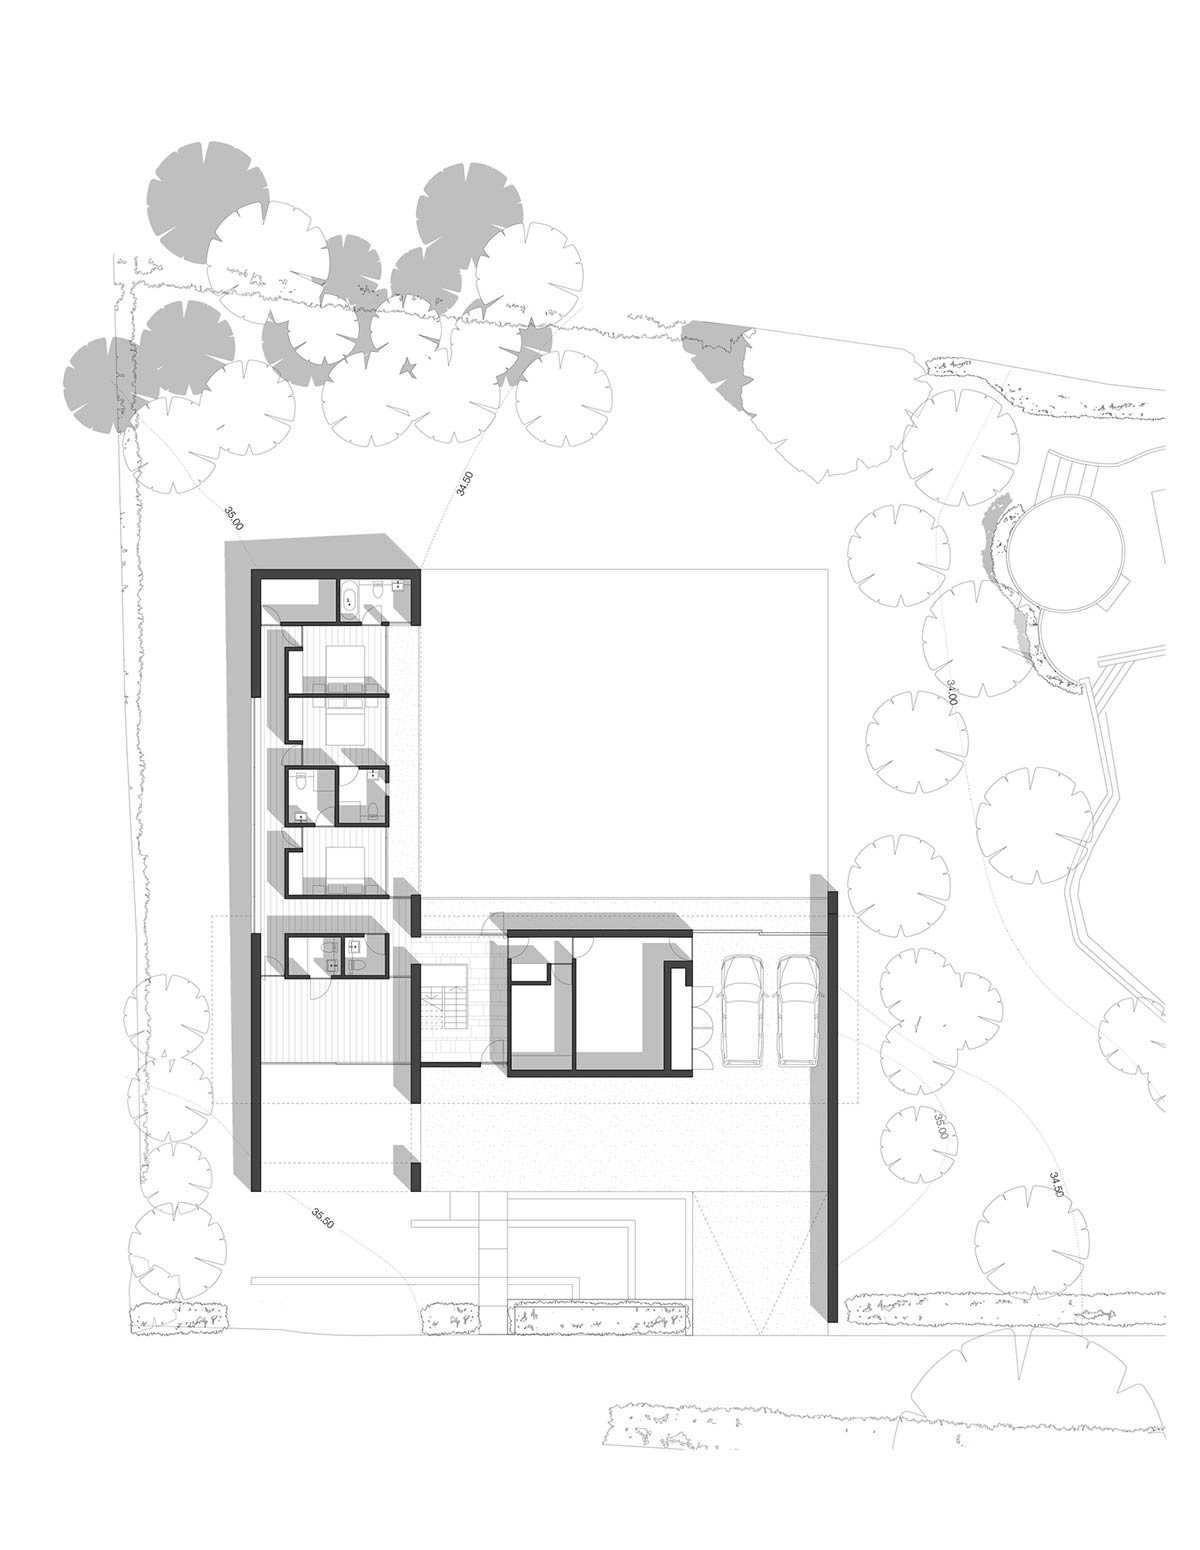 Plan, Hurst House, Buckinghamshire by John Pardey Architects + Strom Architects